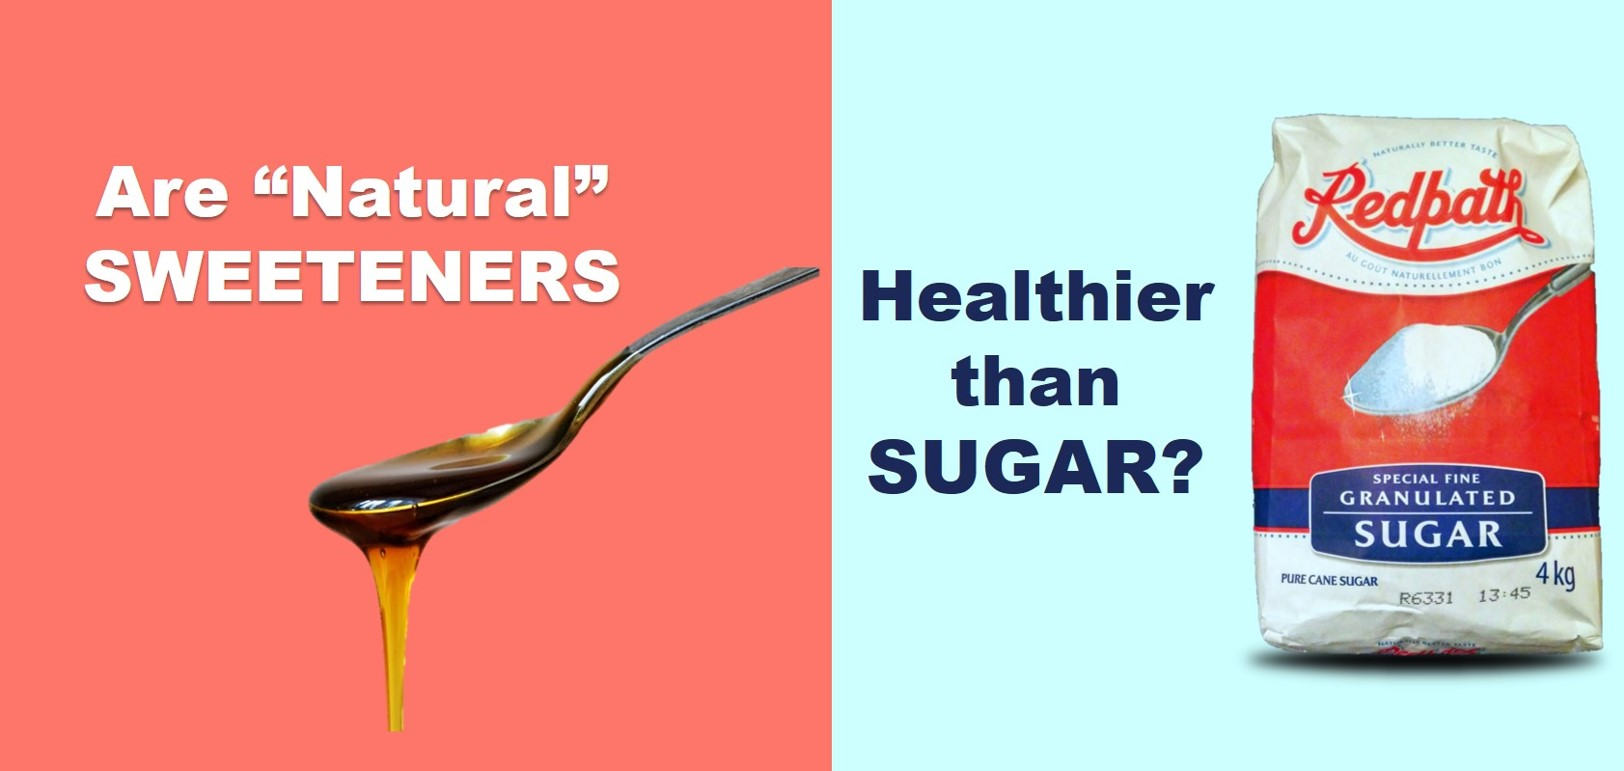 Are Natural Sweeteners Healthier than Sugar?